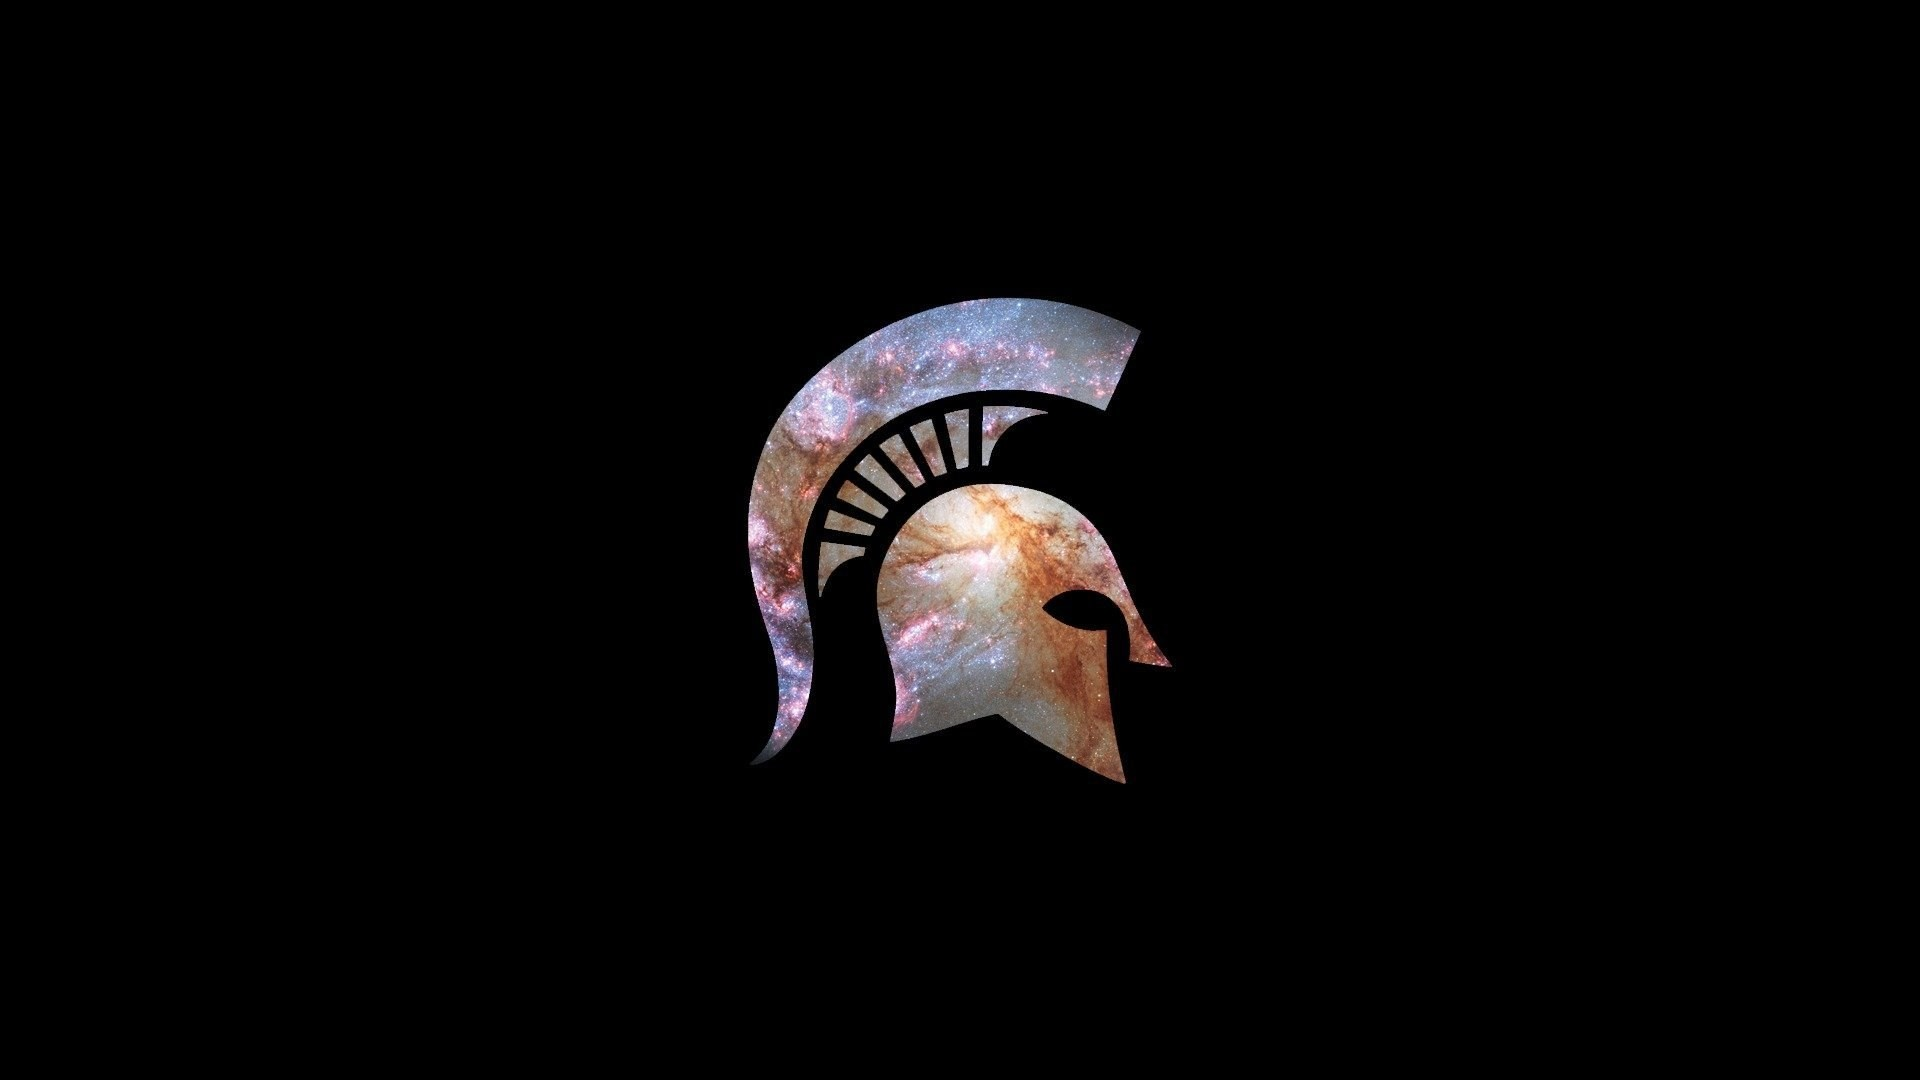 Spartan Helmet Wallpaper HD (70+ images)